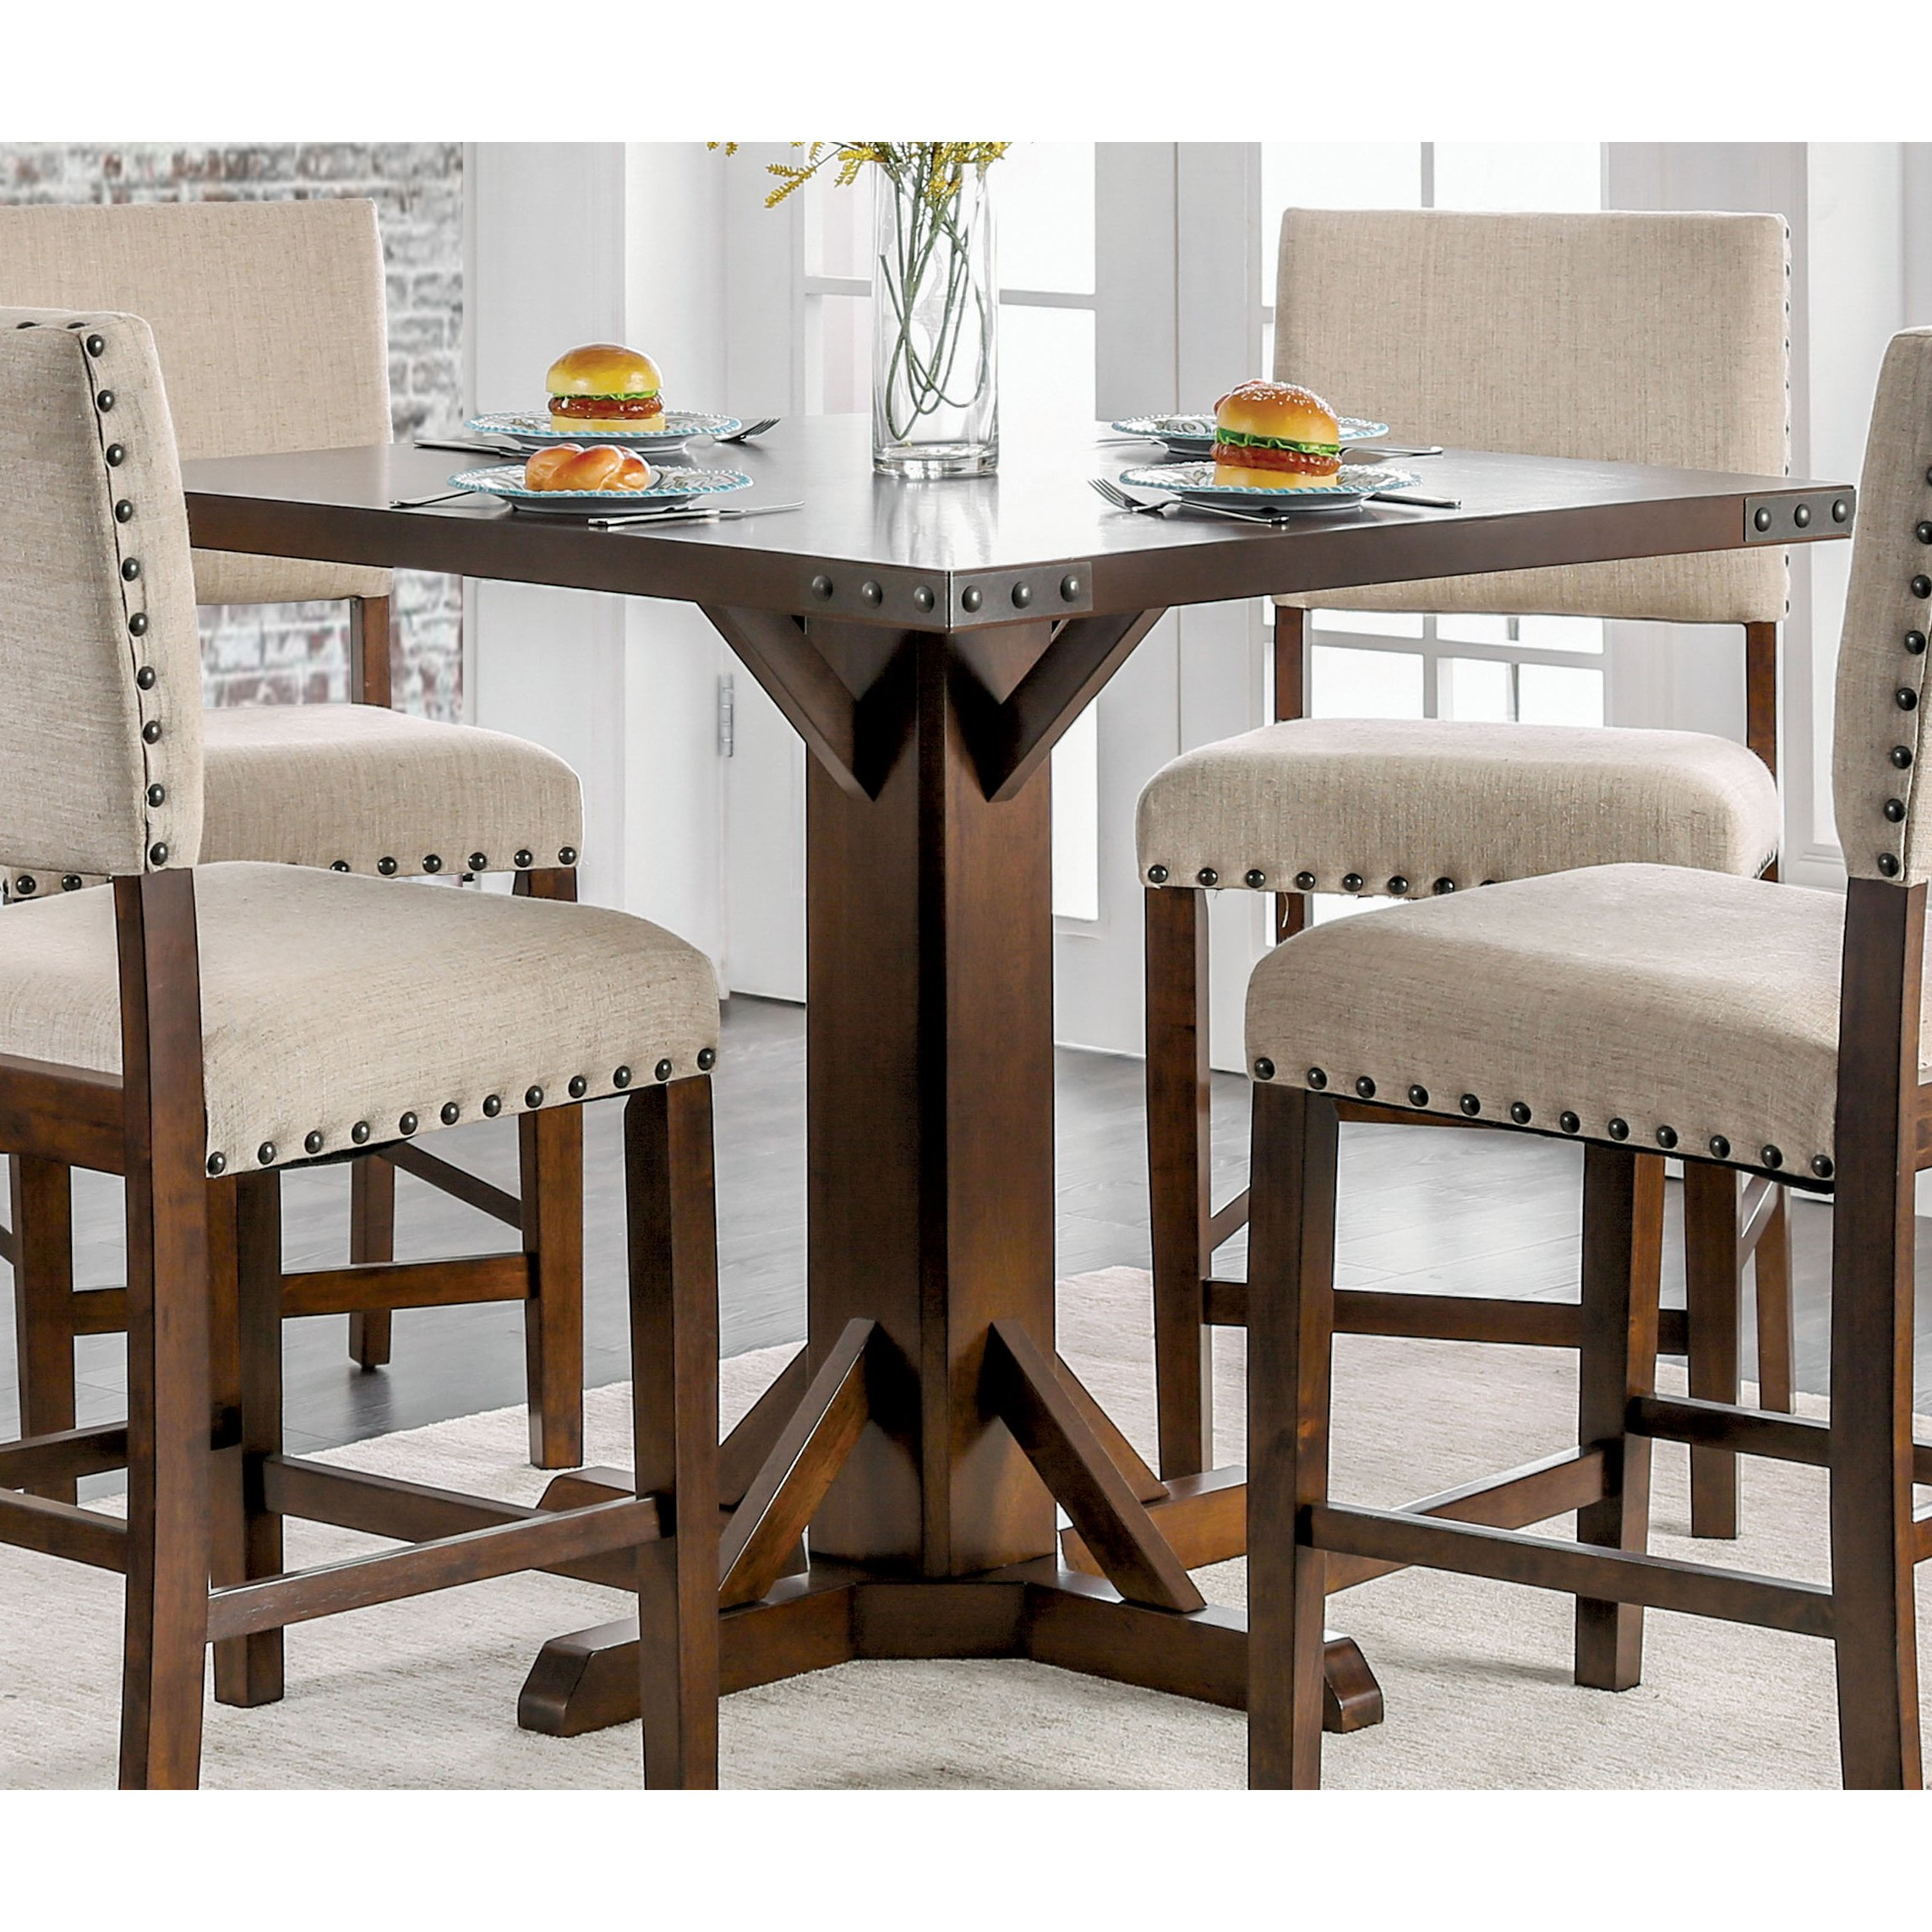 furniture america banea rustic nailhead brown cherry counter height table accent free shipping today blue lacquer side wicker drum tree stump coffee white pub wooden frog